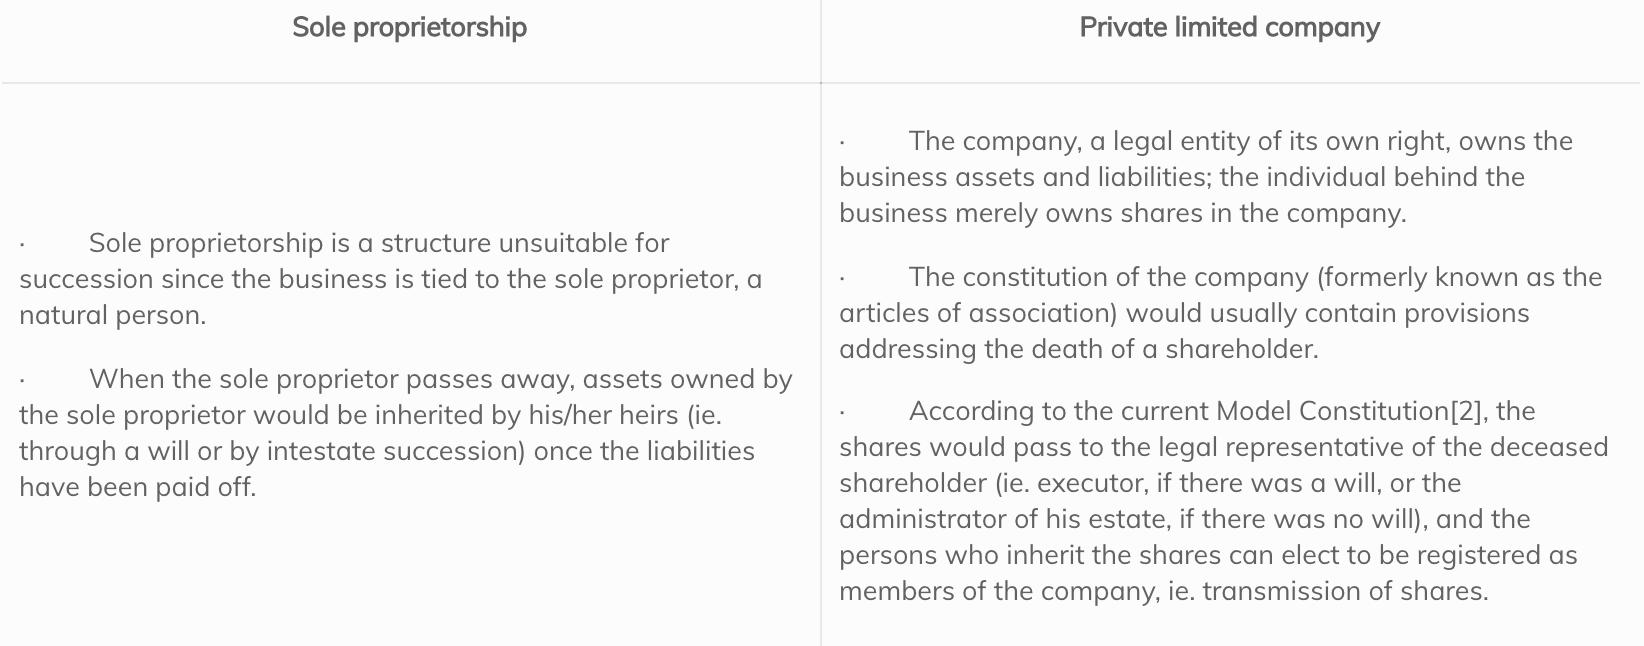 Succession in a sole proprietorship vs private limited company